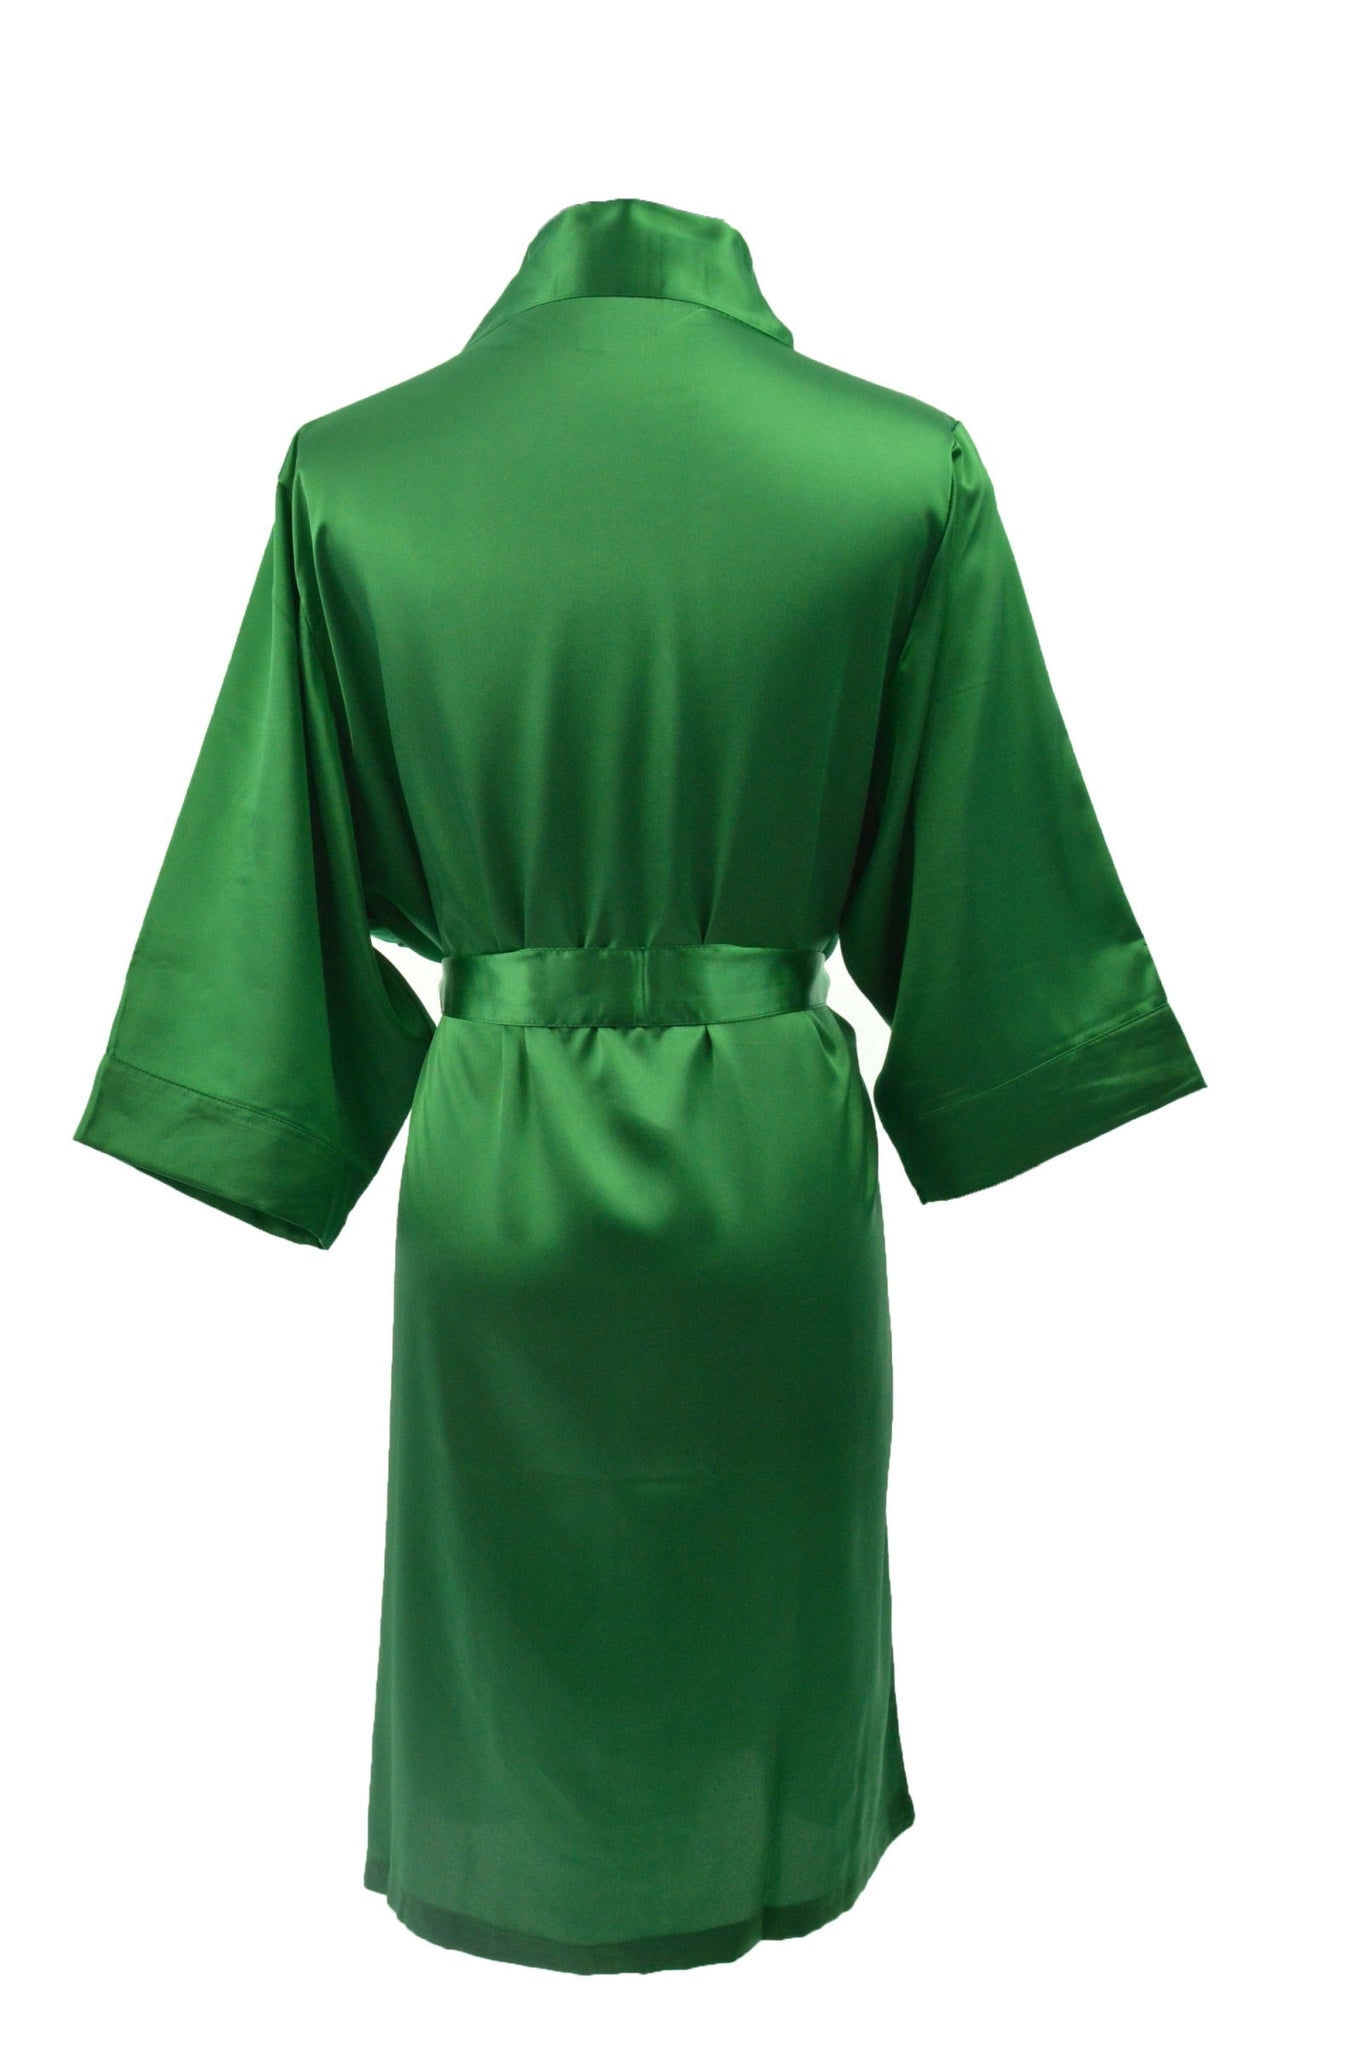 Dreamlover Robe - Emerald